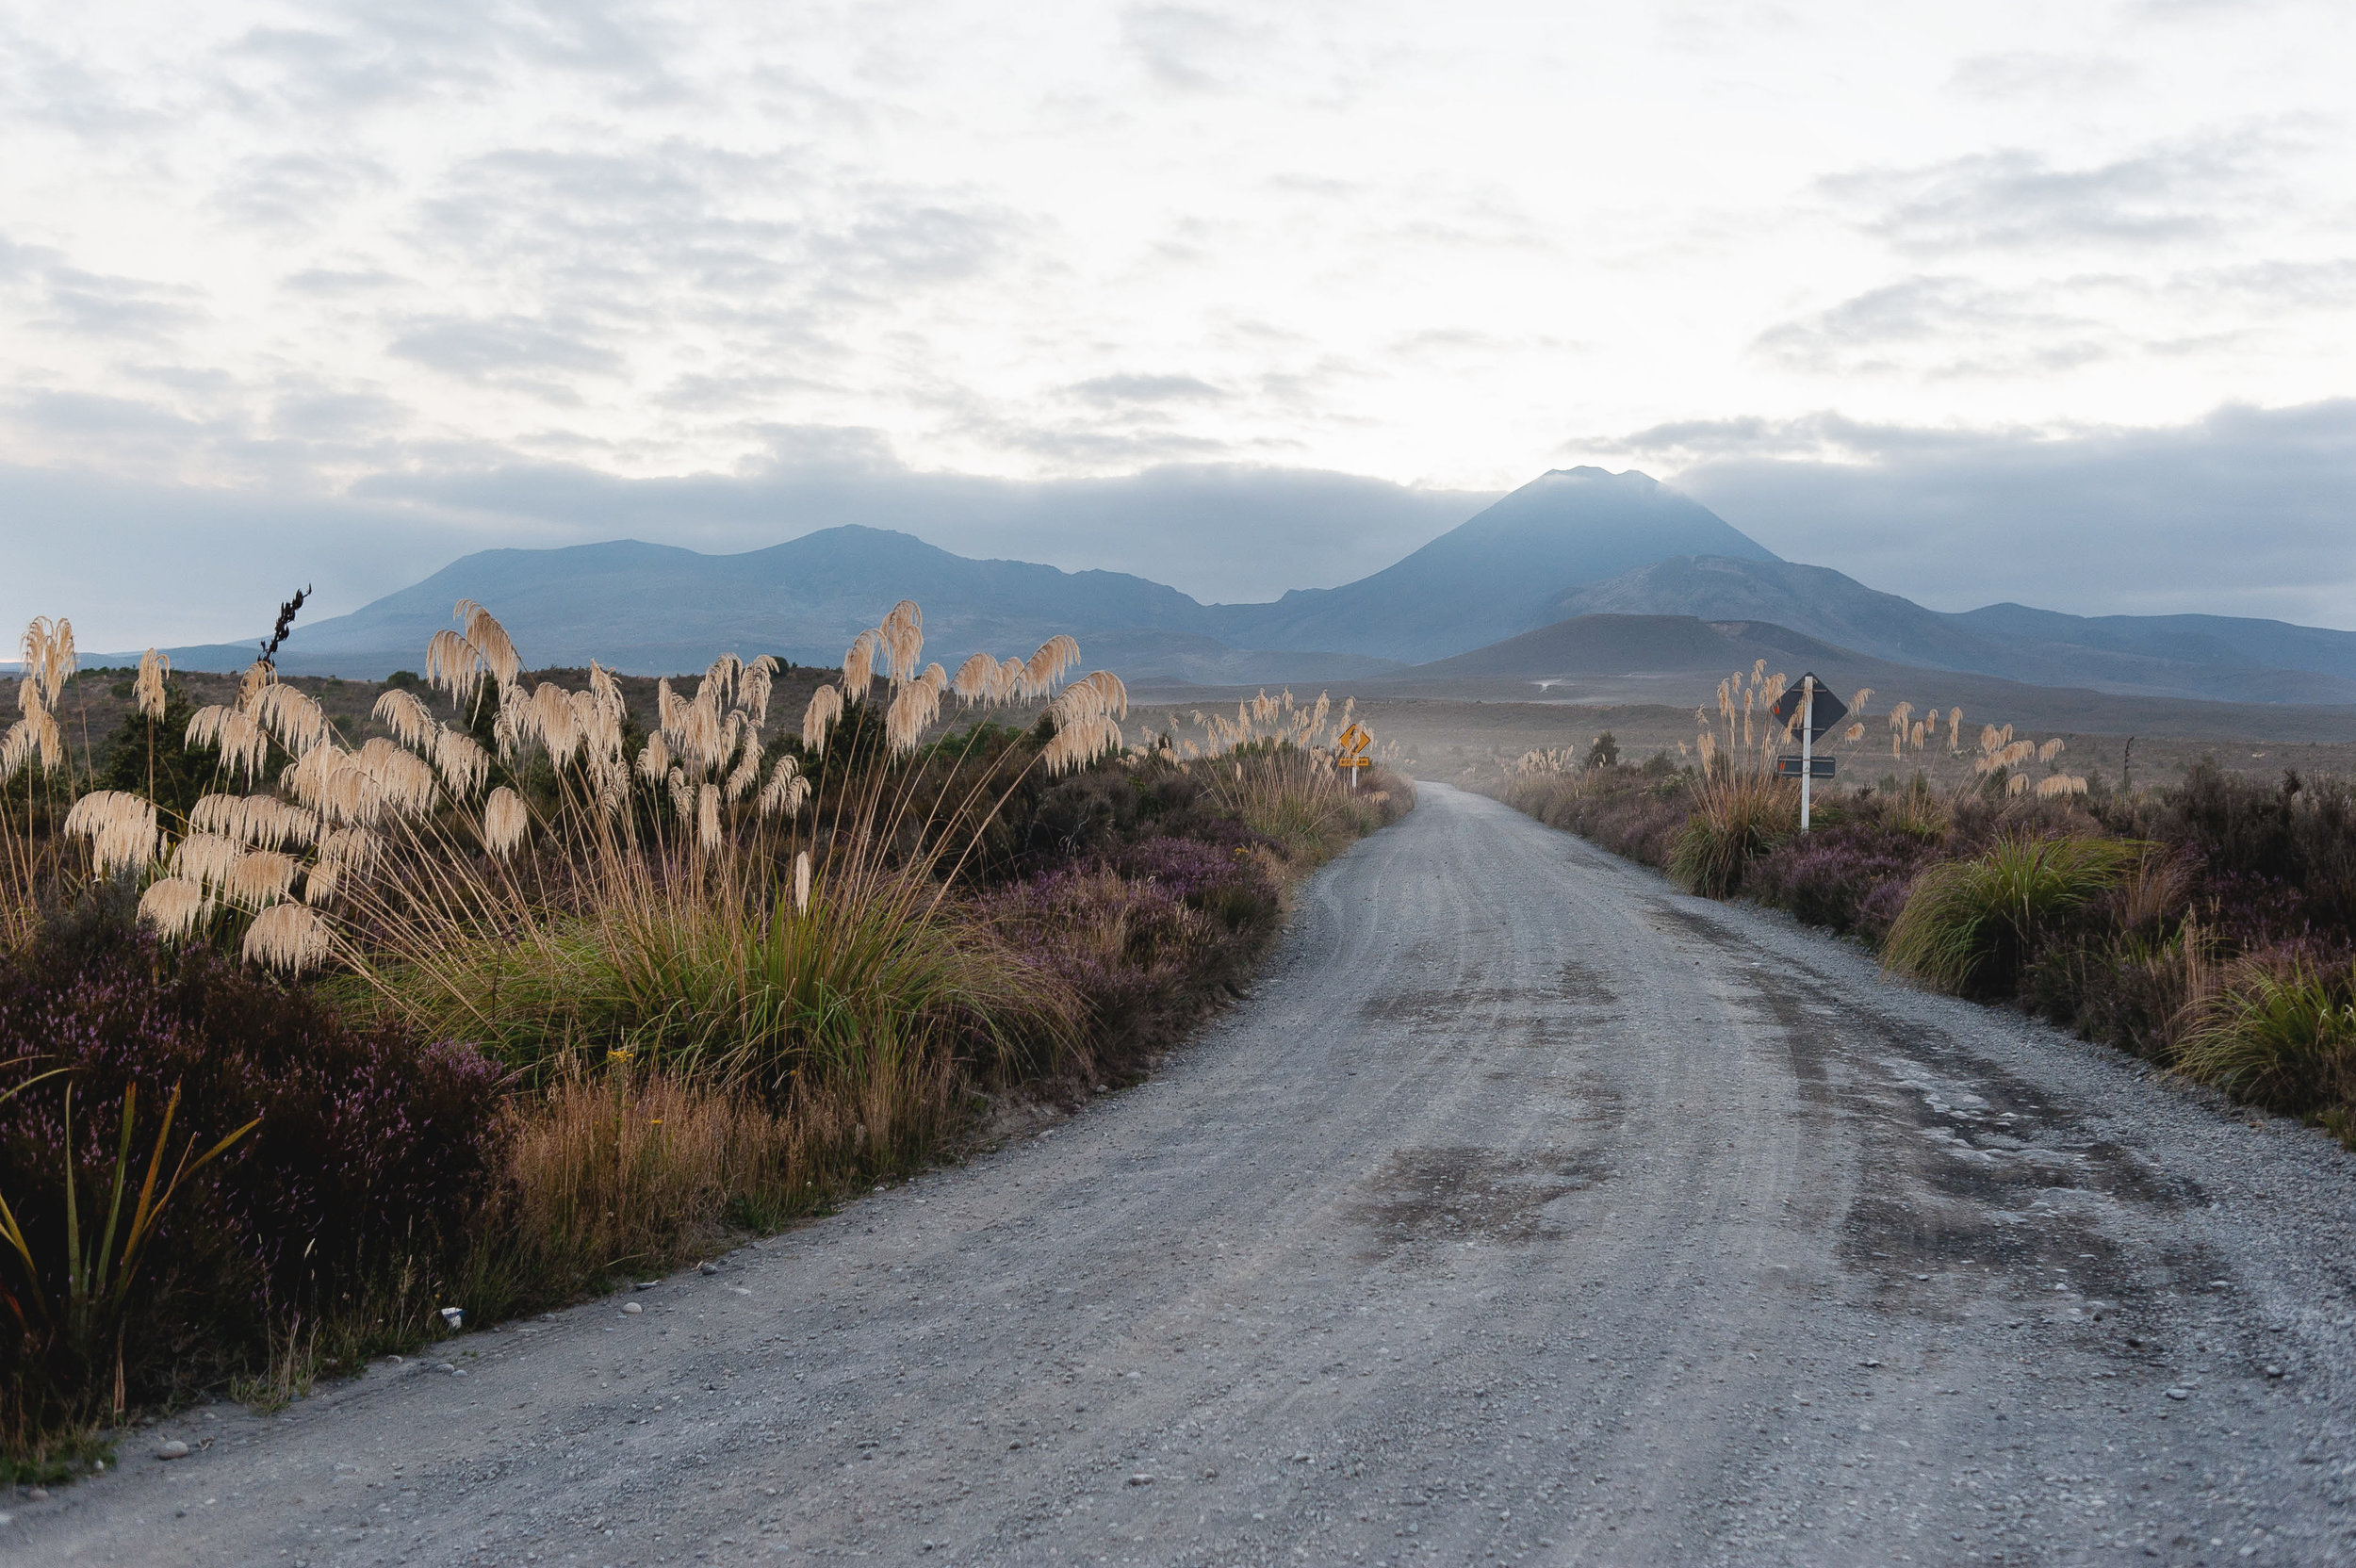 tongariro crossing-8520.jpg